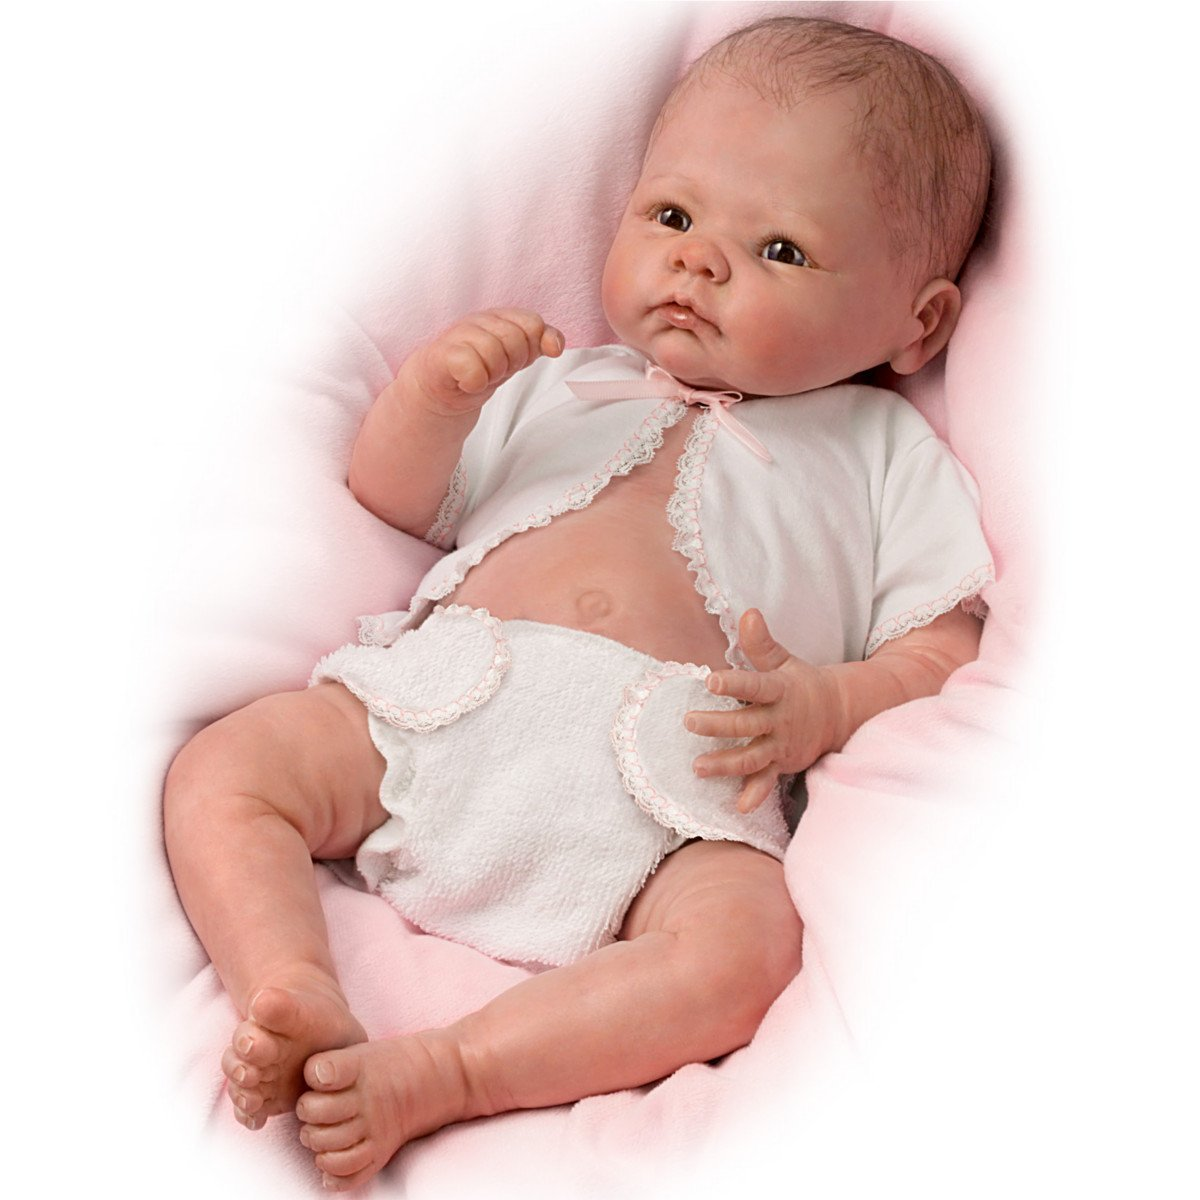 Ashton drake lifelike baby doll by linda murray little for The ashton